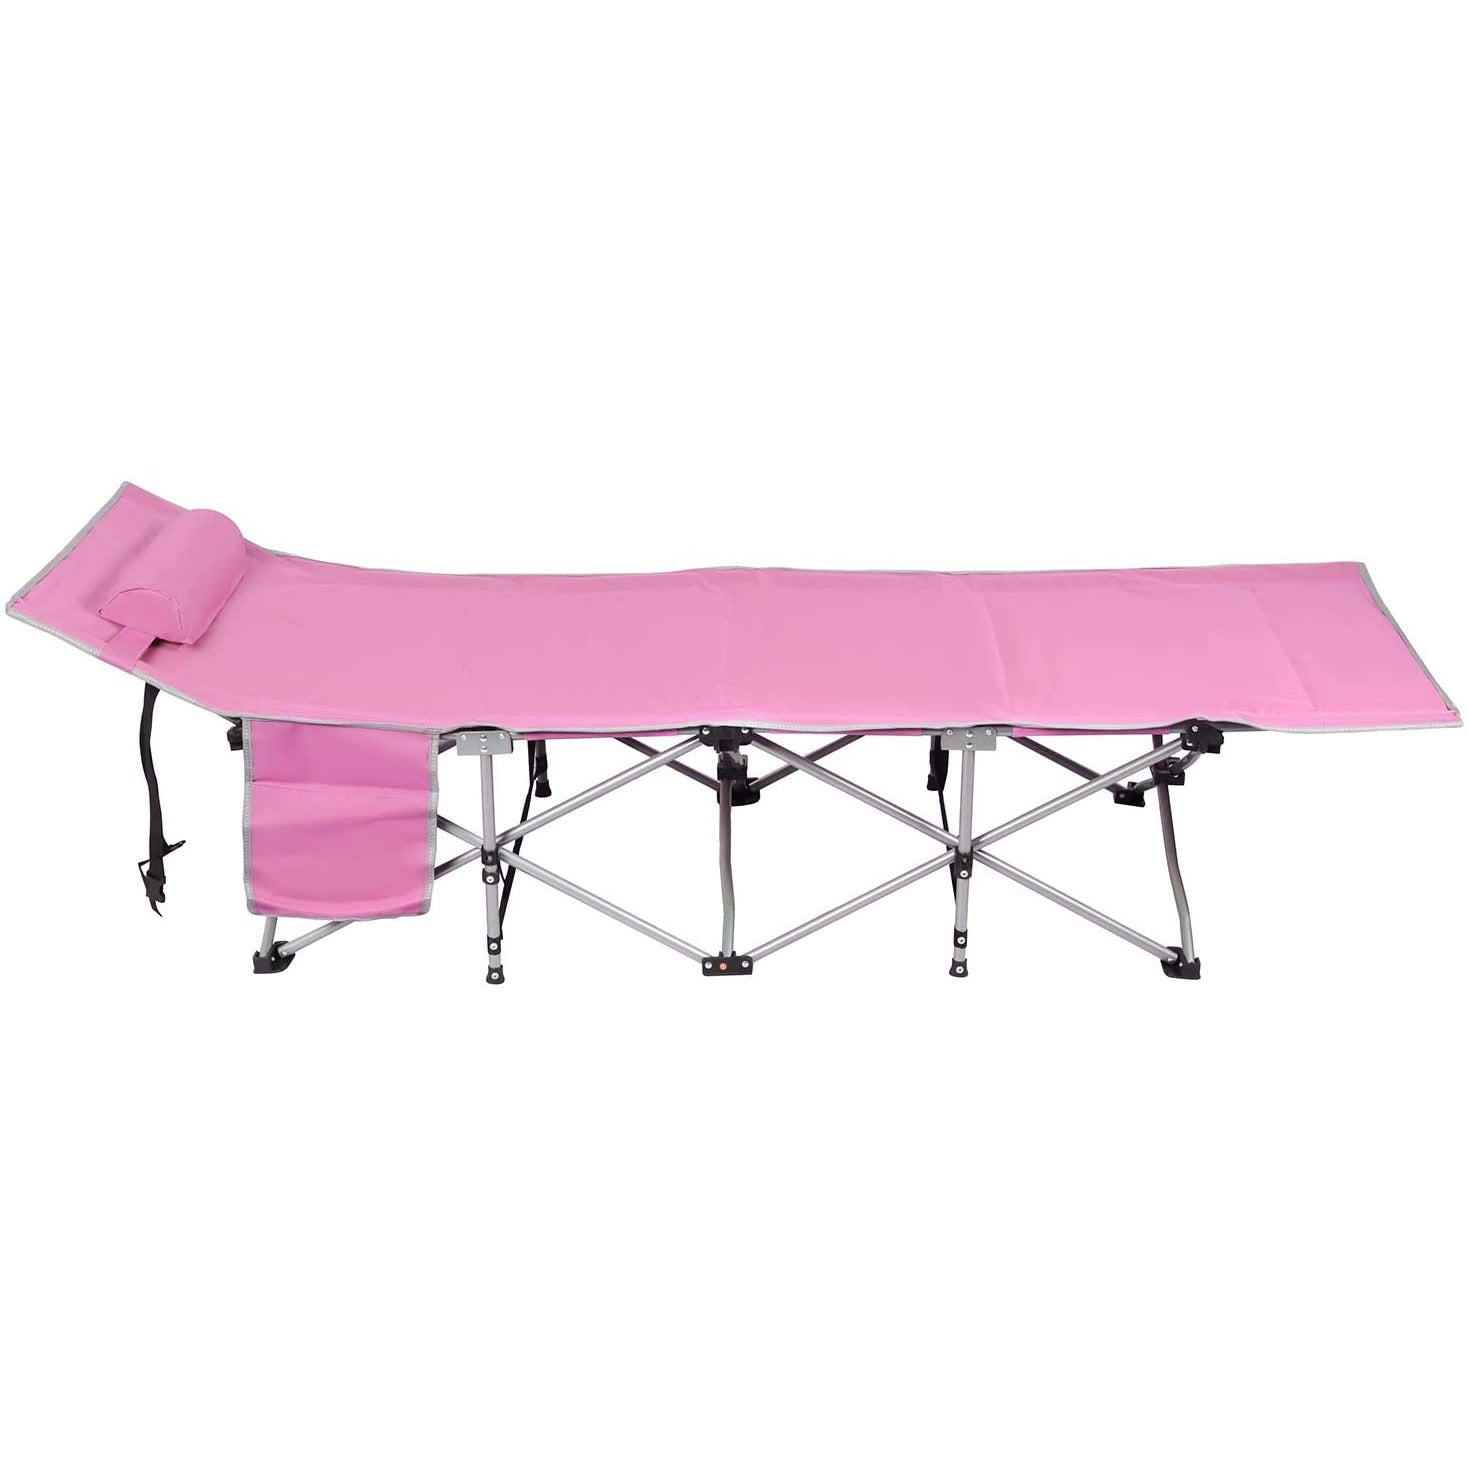 Plum Folding Sleeping Camping Cot 450 lbs Max, Bed w/Pillow and Side Pocket Portable Design Comfort Small Collapsing Sleeping Bed- Outdoor Traveling Picnic for Adults